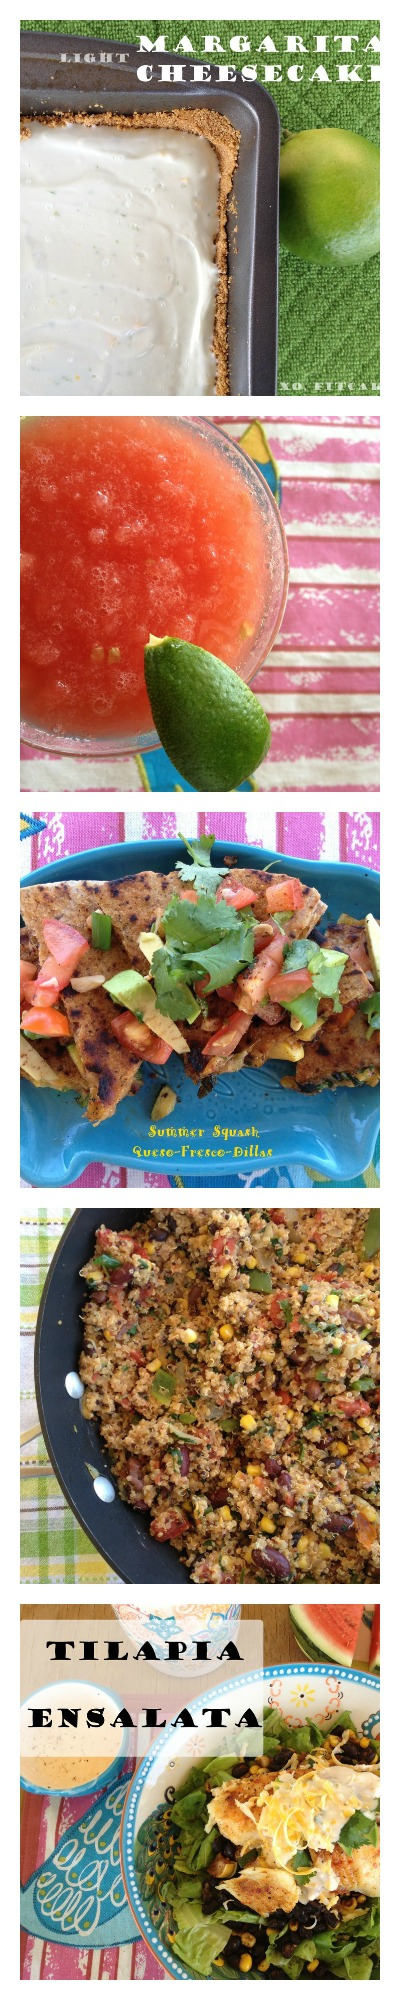 Check out this page  for 5 great Cinco de Mayo recipes that help you stick to your healthy eating habits!